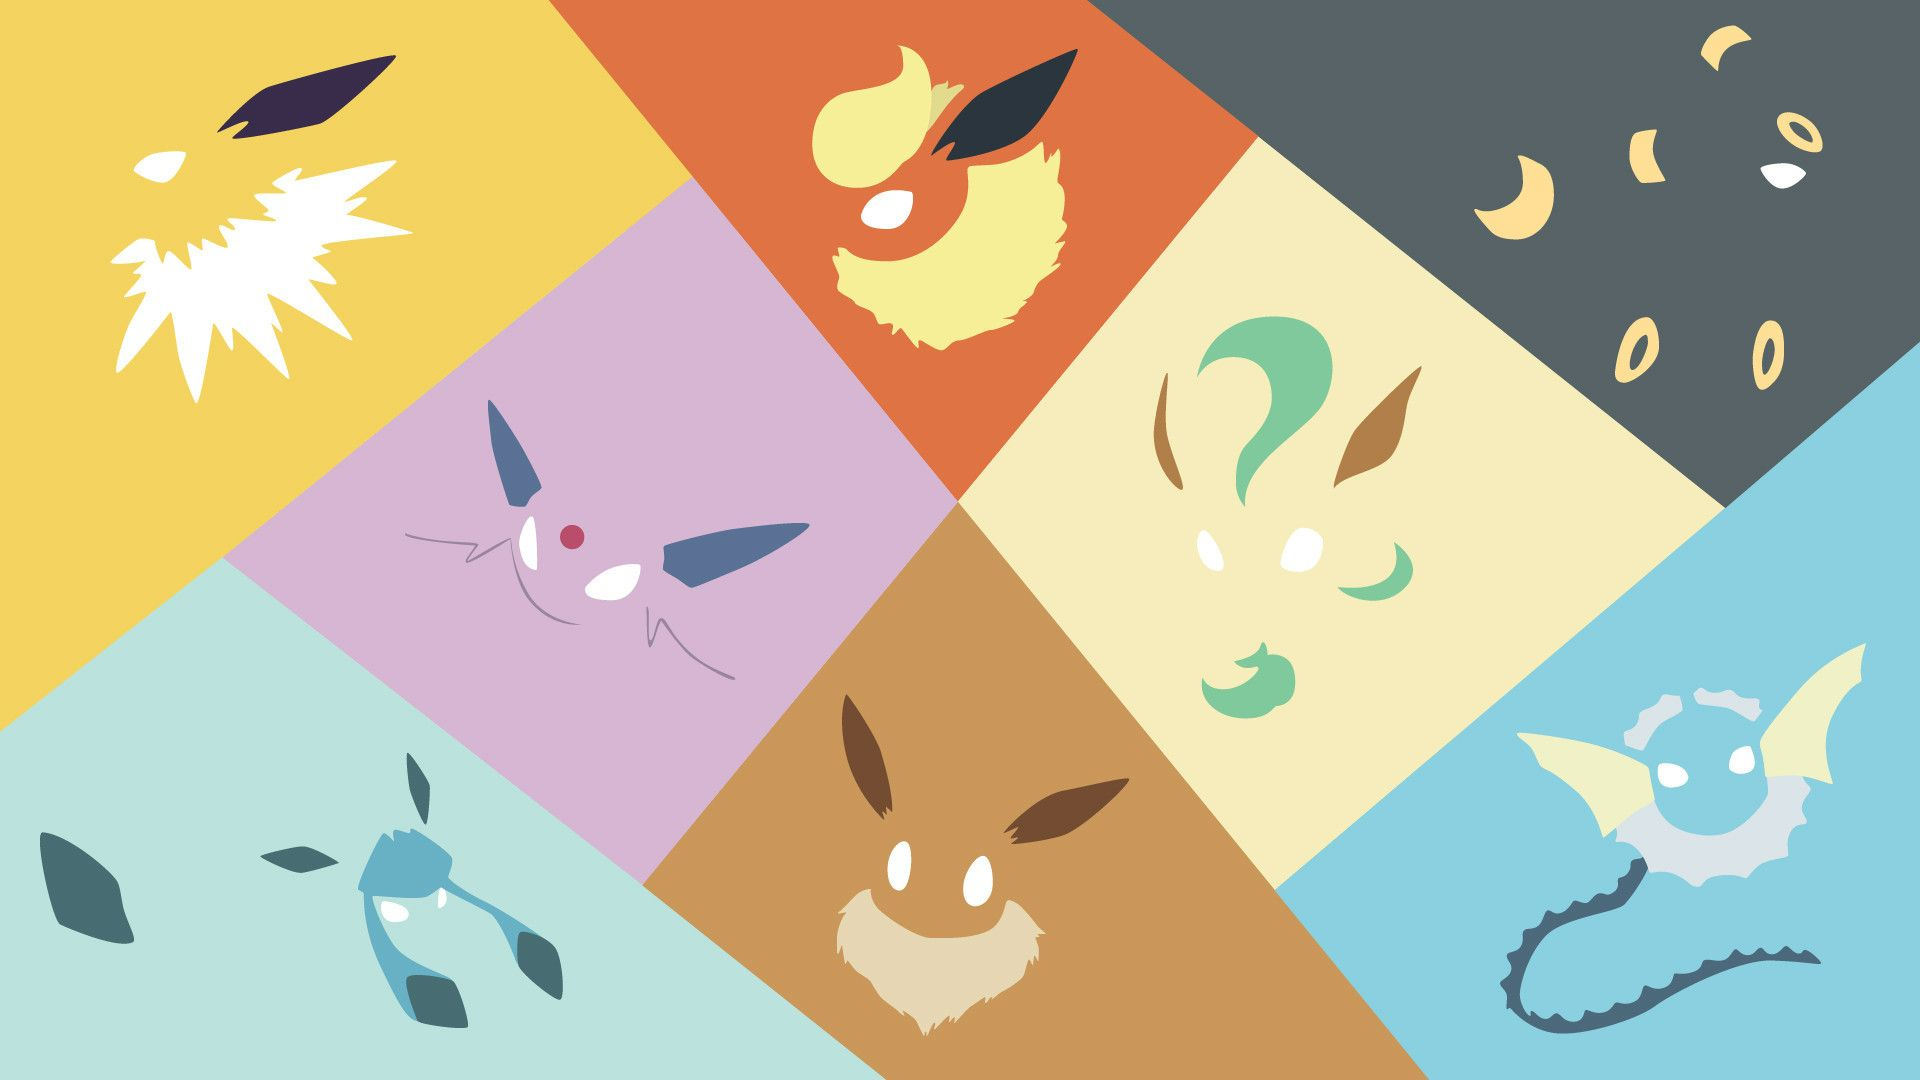 1920x1080 Eevee Iphone Wallpaper Eevee Wallpaper Cute Pokemon Wallpaper Umbreon Wallpaper